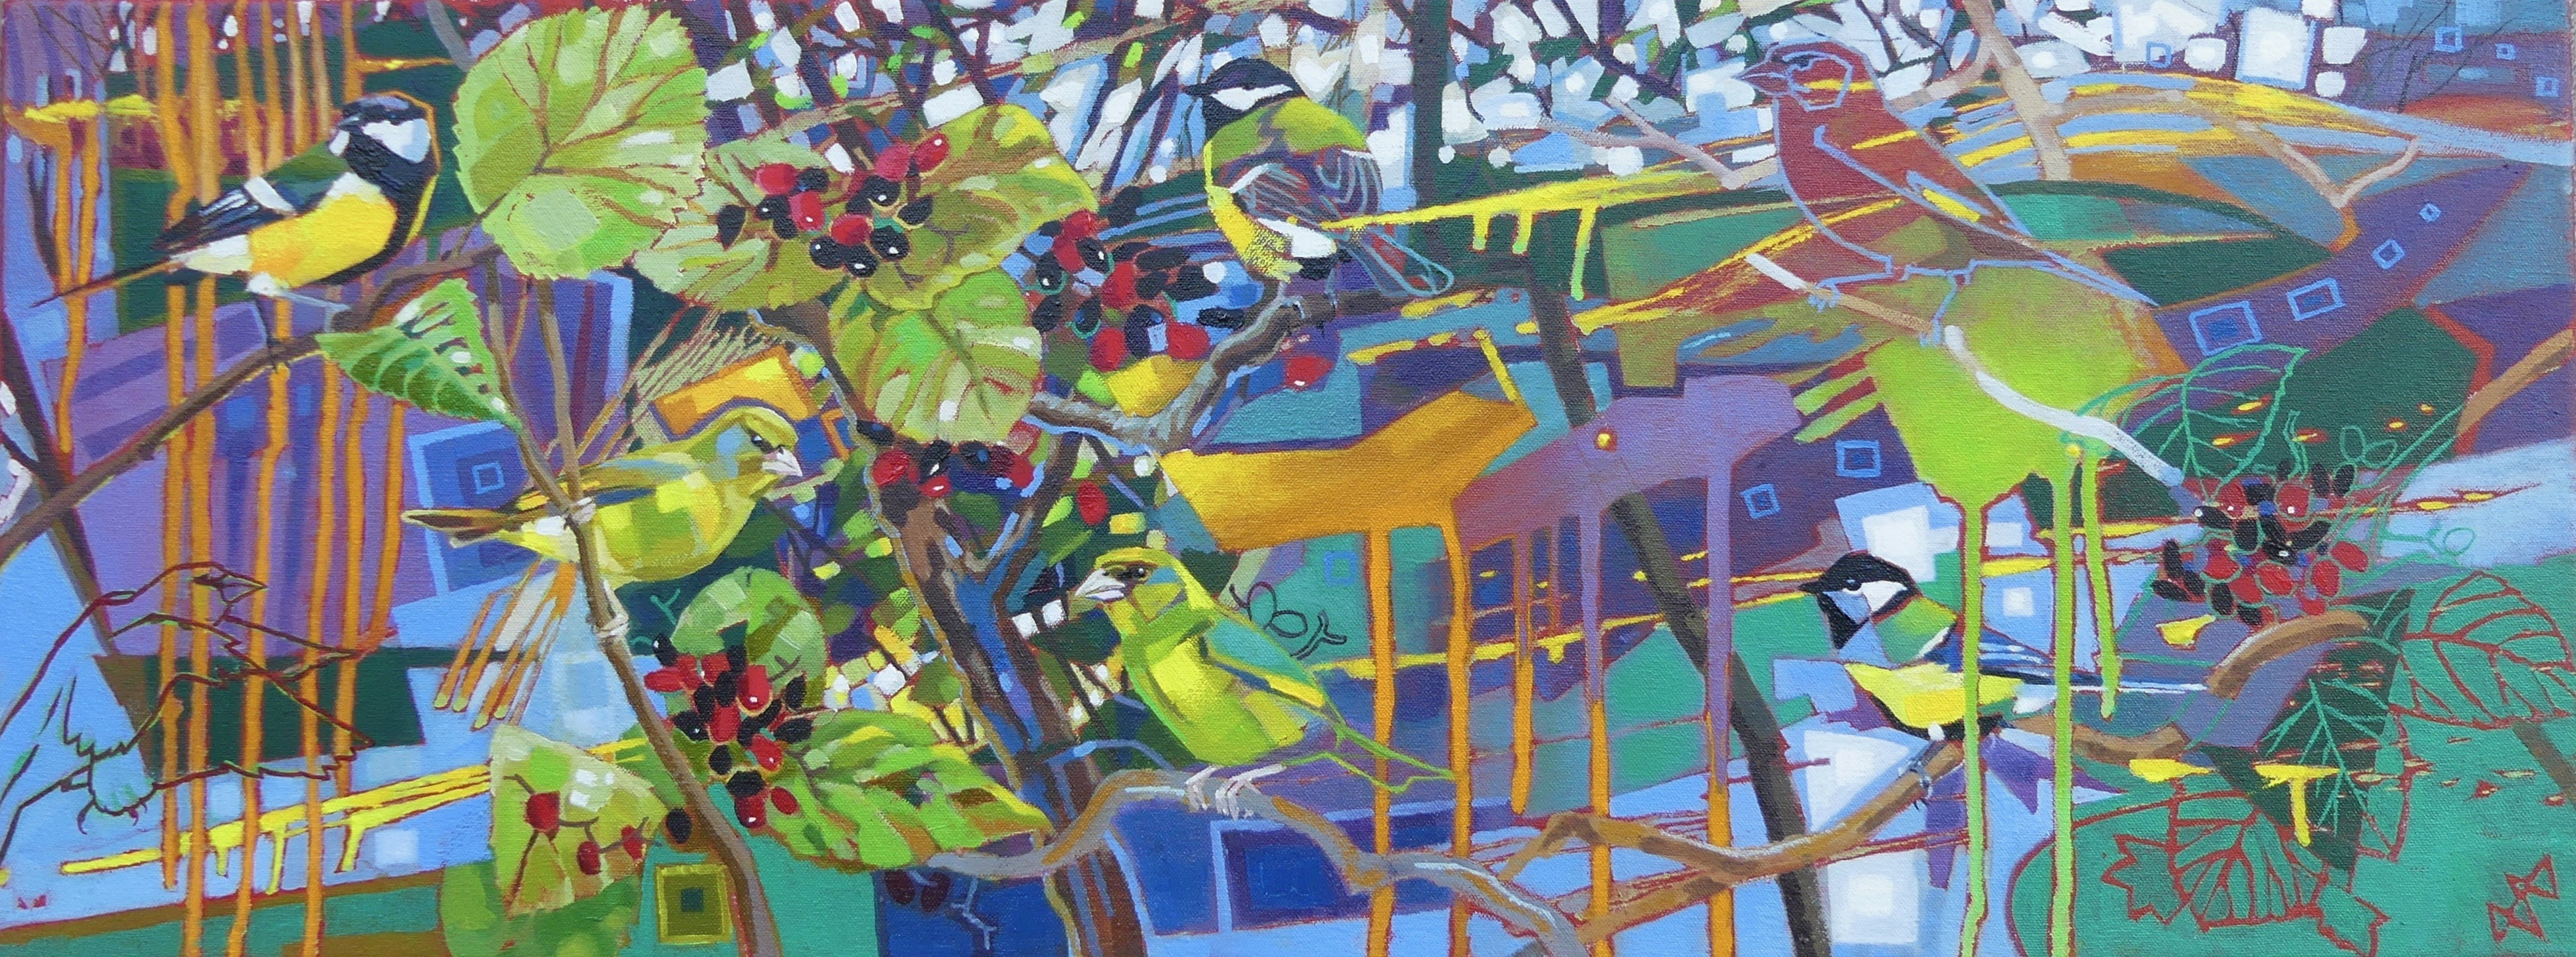 <p>Greenfinches, Great Tits and Wayfaring Tree by Brin Edwards</p>